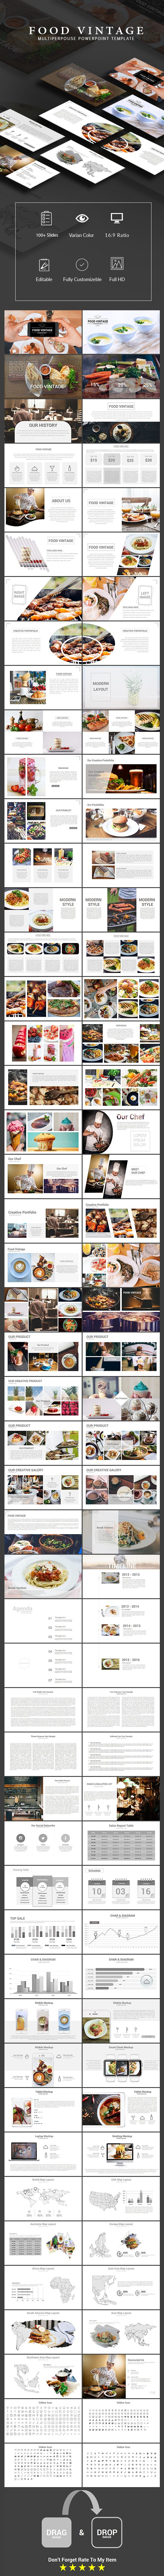 Food Vintage - Multiperpouse Powerpoint Template